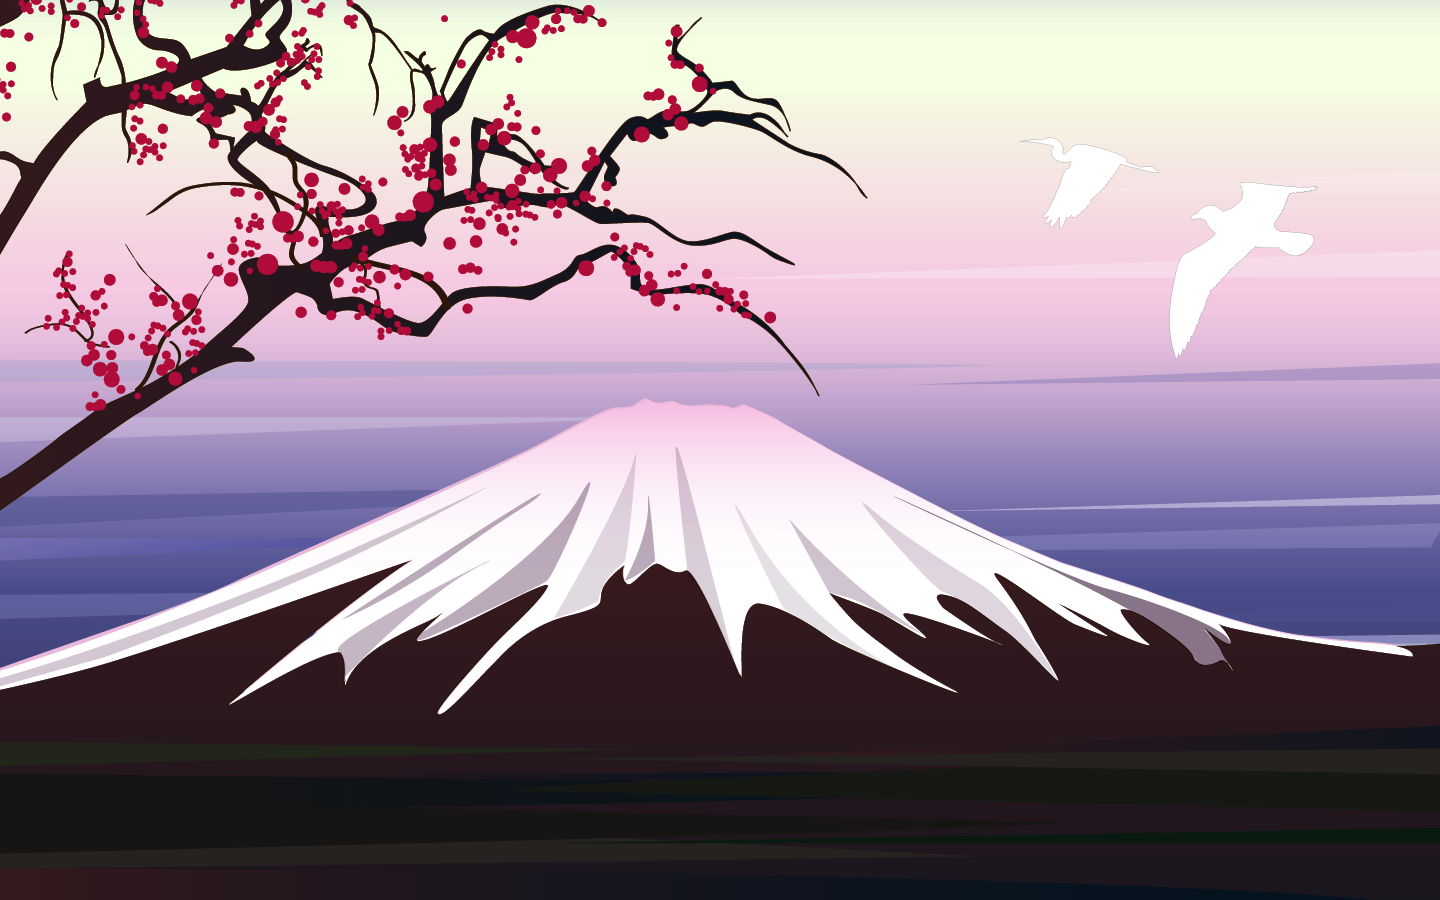 Good Wallpaper Mountain Cartoon - Mountain-Fuji-Japan  Photograph_249369.png